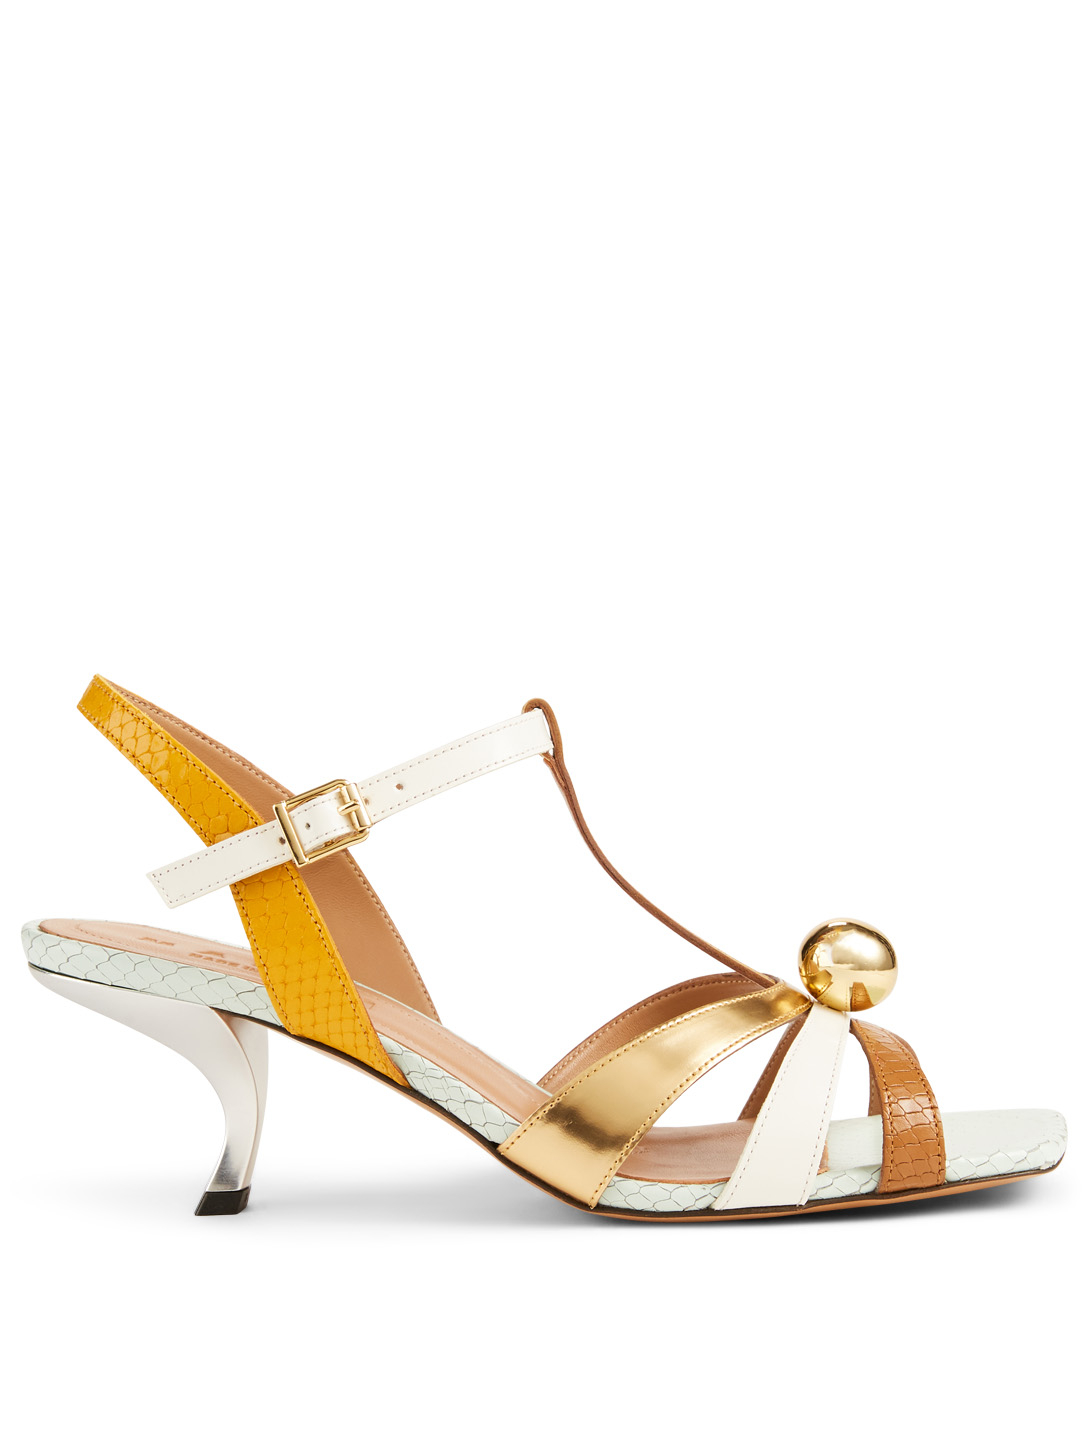 27b0a6782 MARNI Metallic And Snake-Embossed Leather Heeled Sandals Women s Gold ...